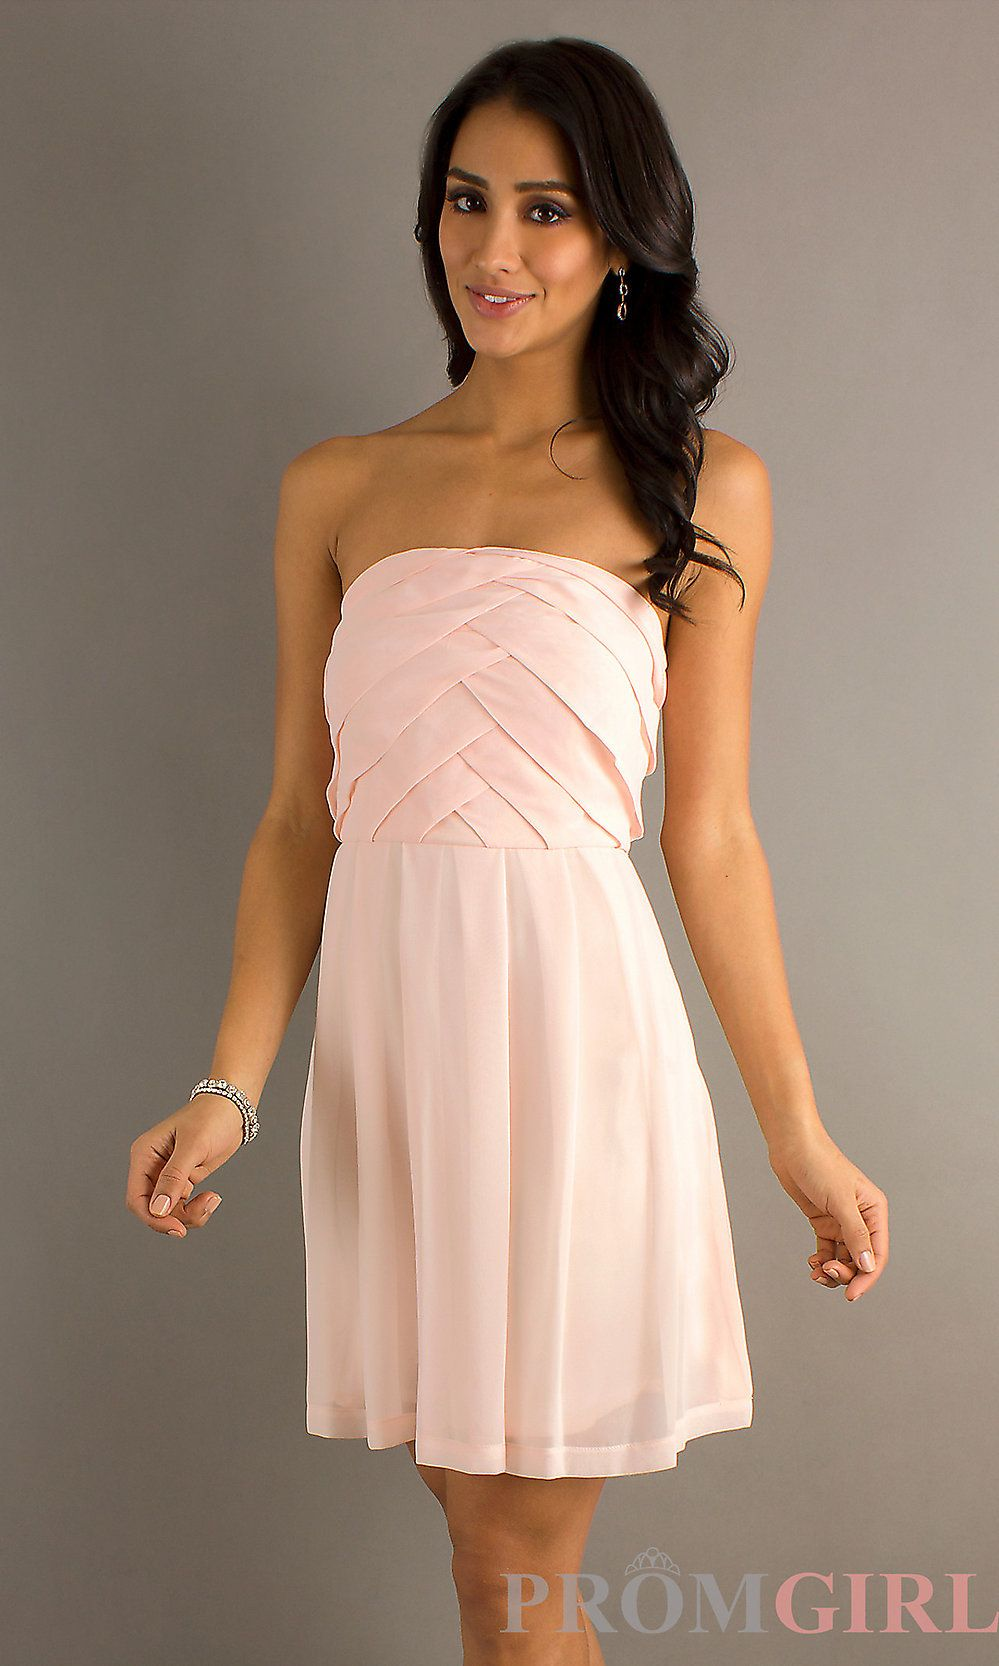 Romantic blush short bridesmaid dresses chiffon strapless semi